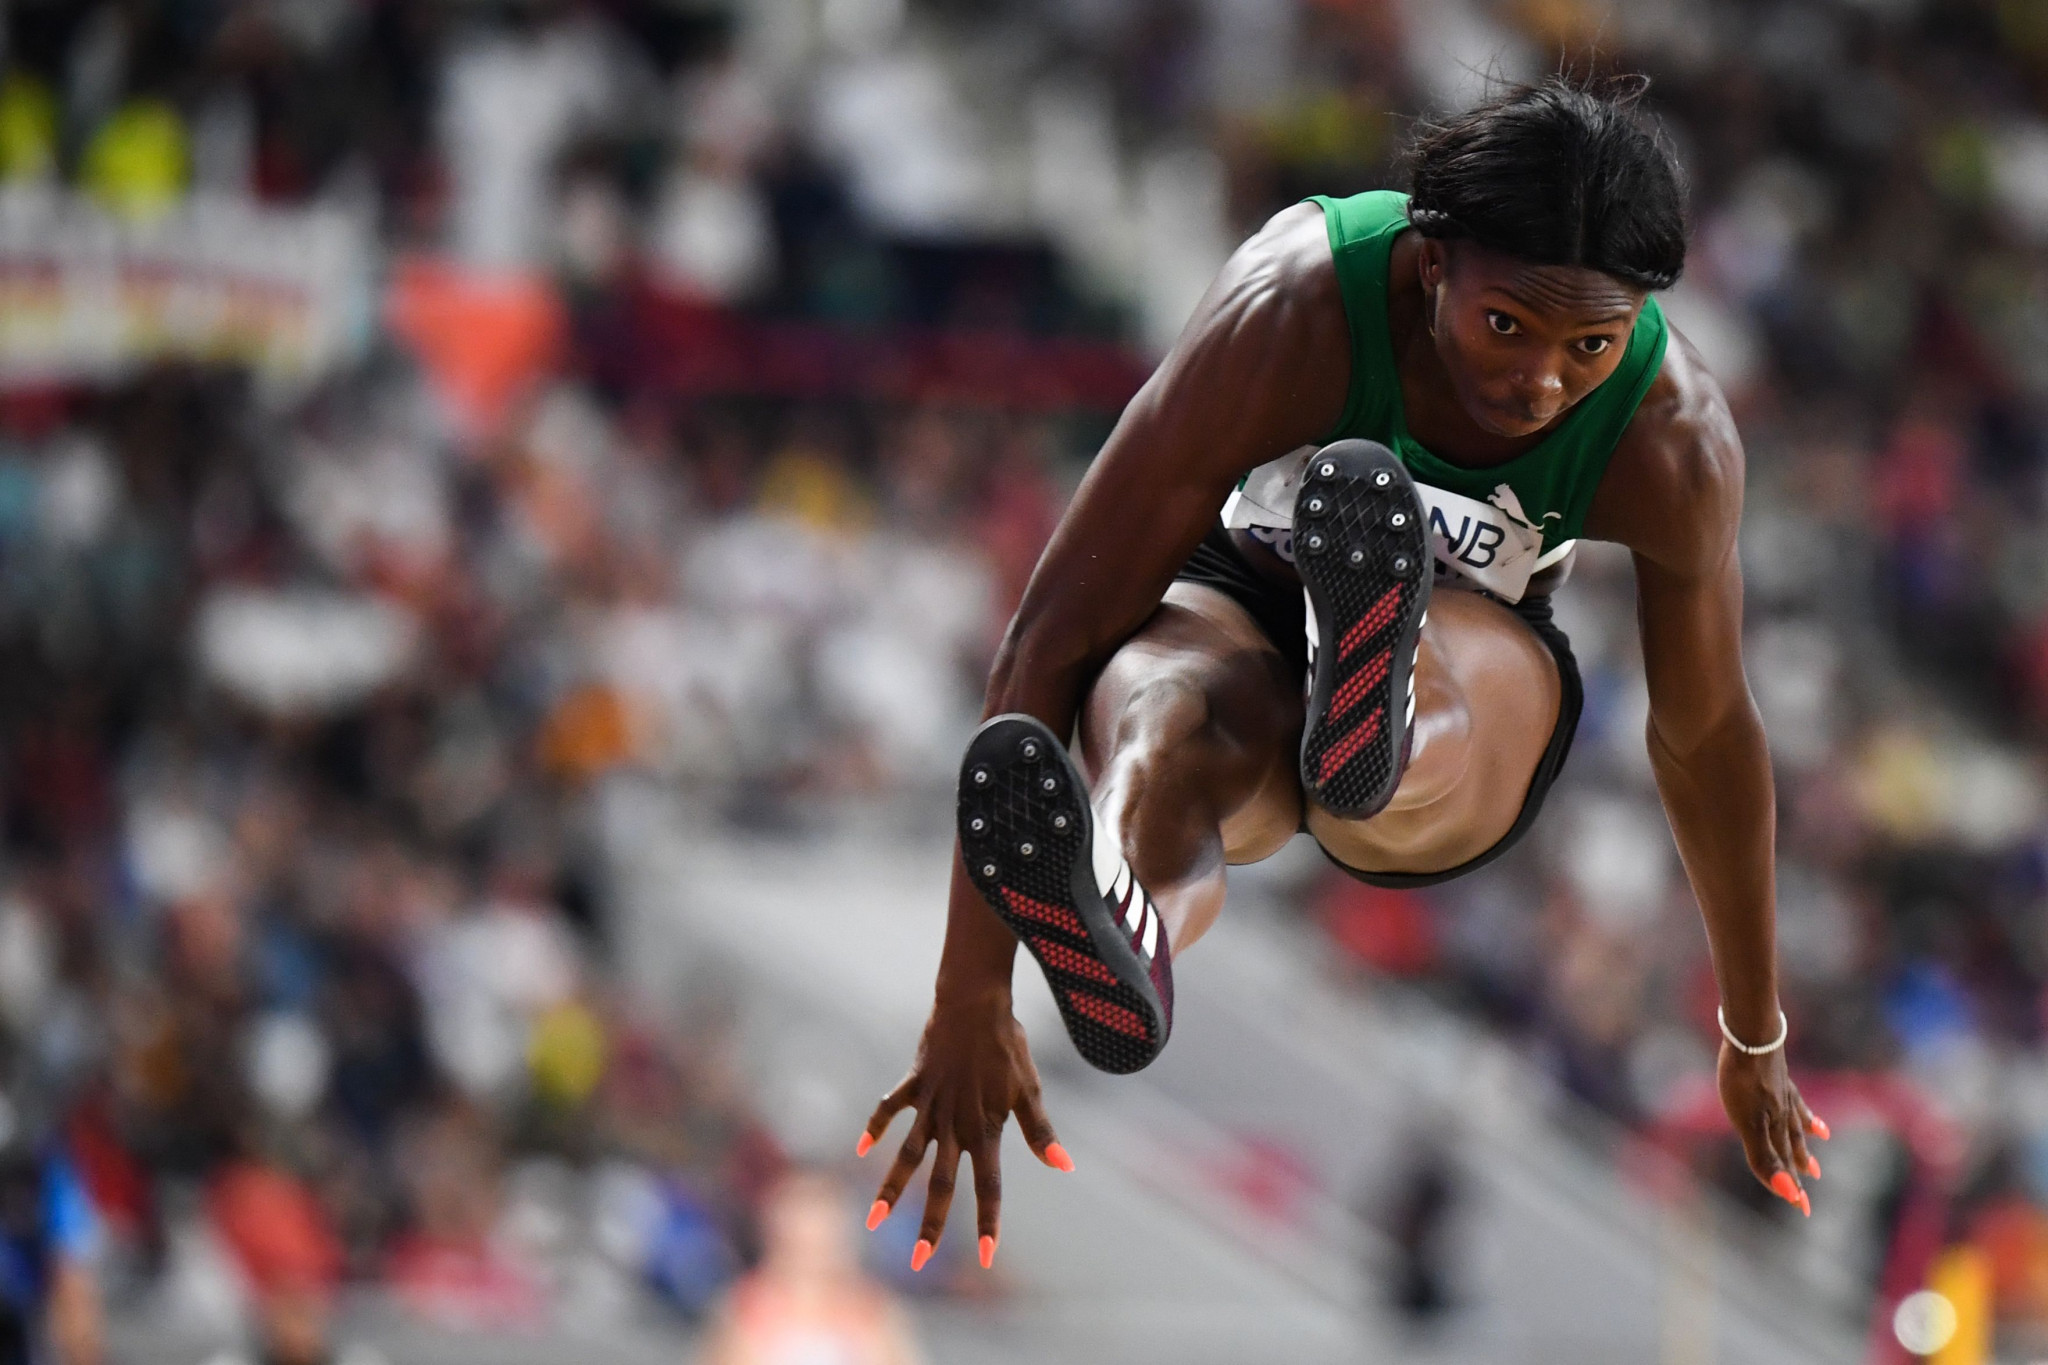 Sunday Dare has claimed Nigeria's reputation will be restored after the IAAF receives the money ©Getty Images